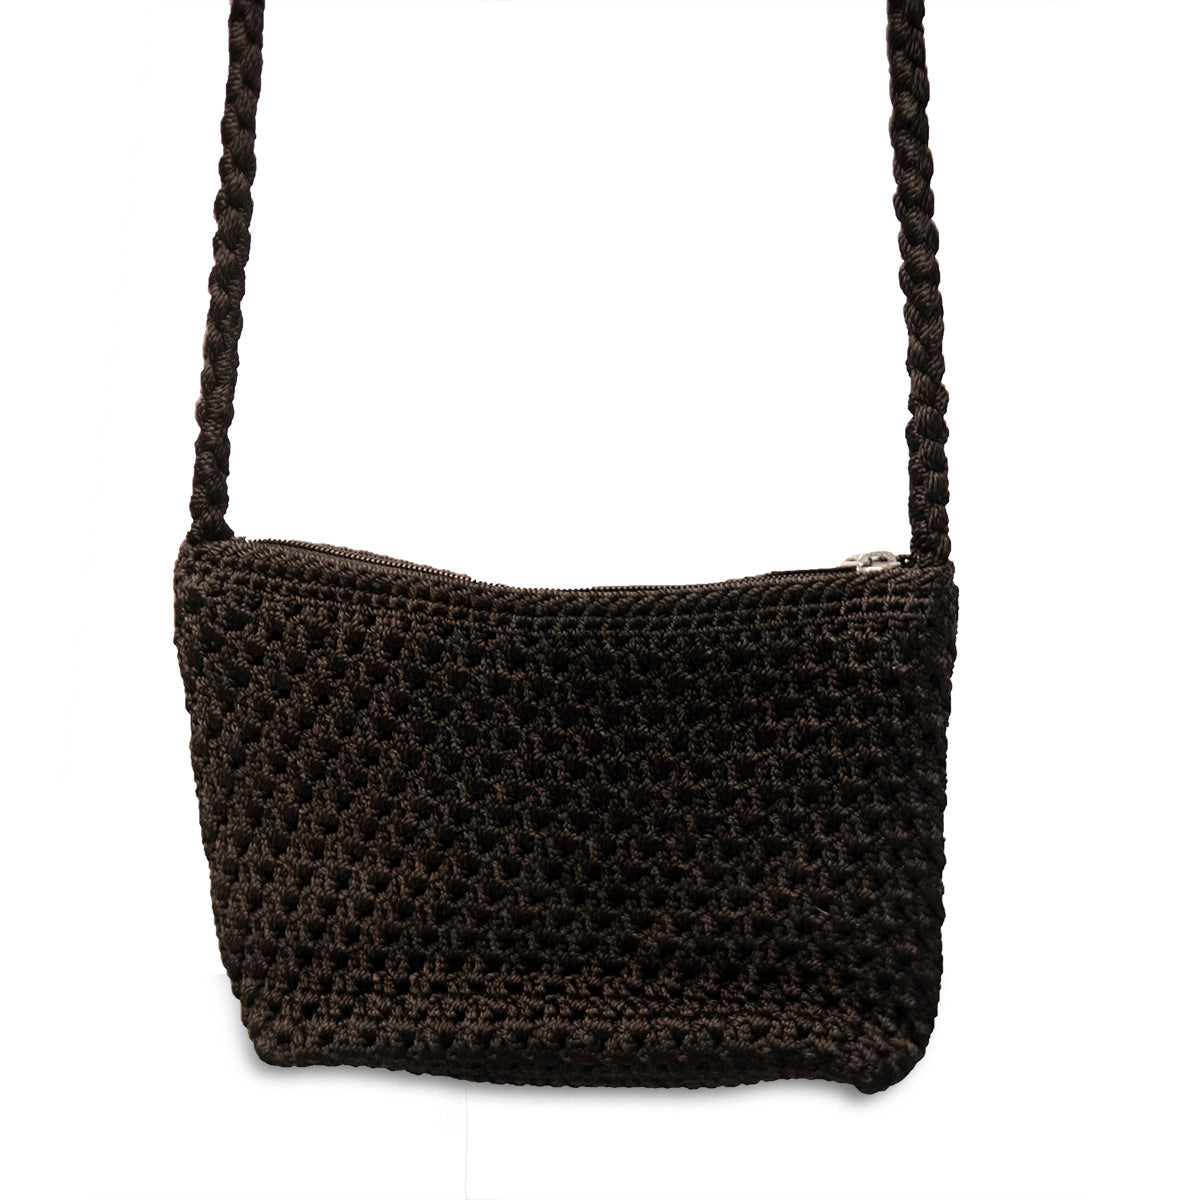 Small Black Macrame Shoulder Bag 3